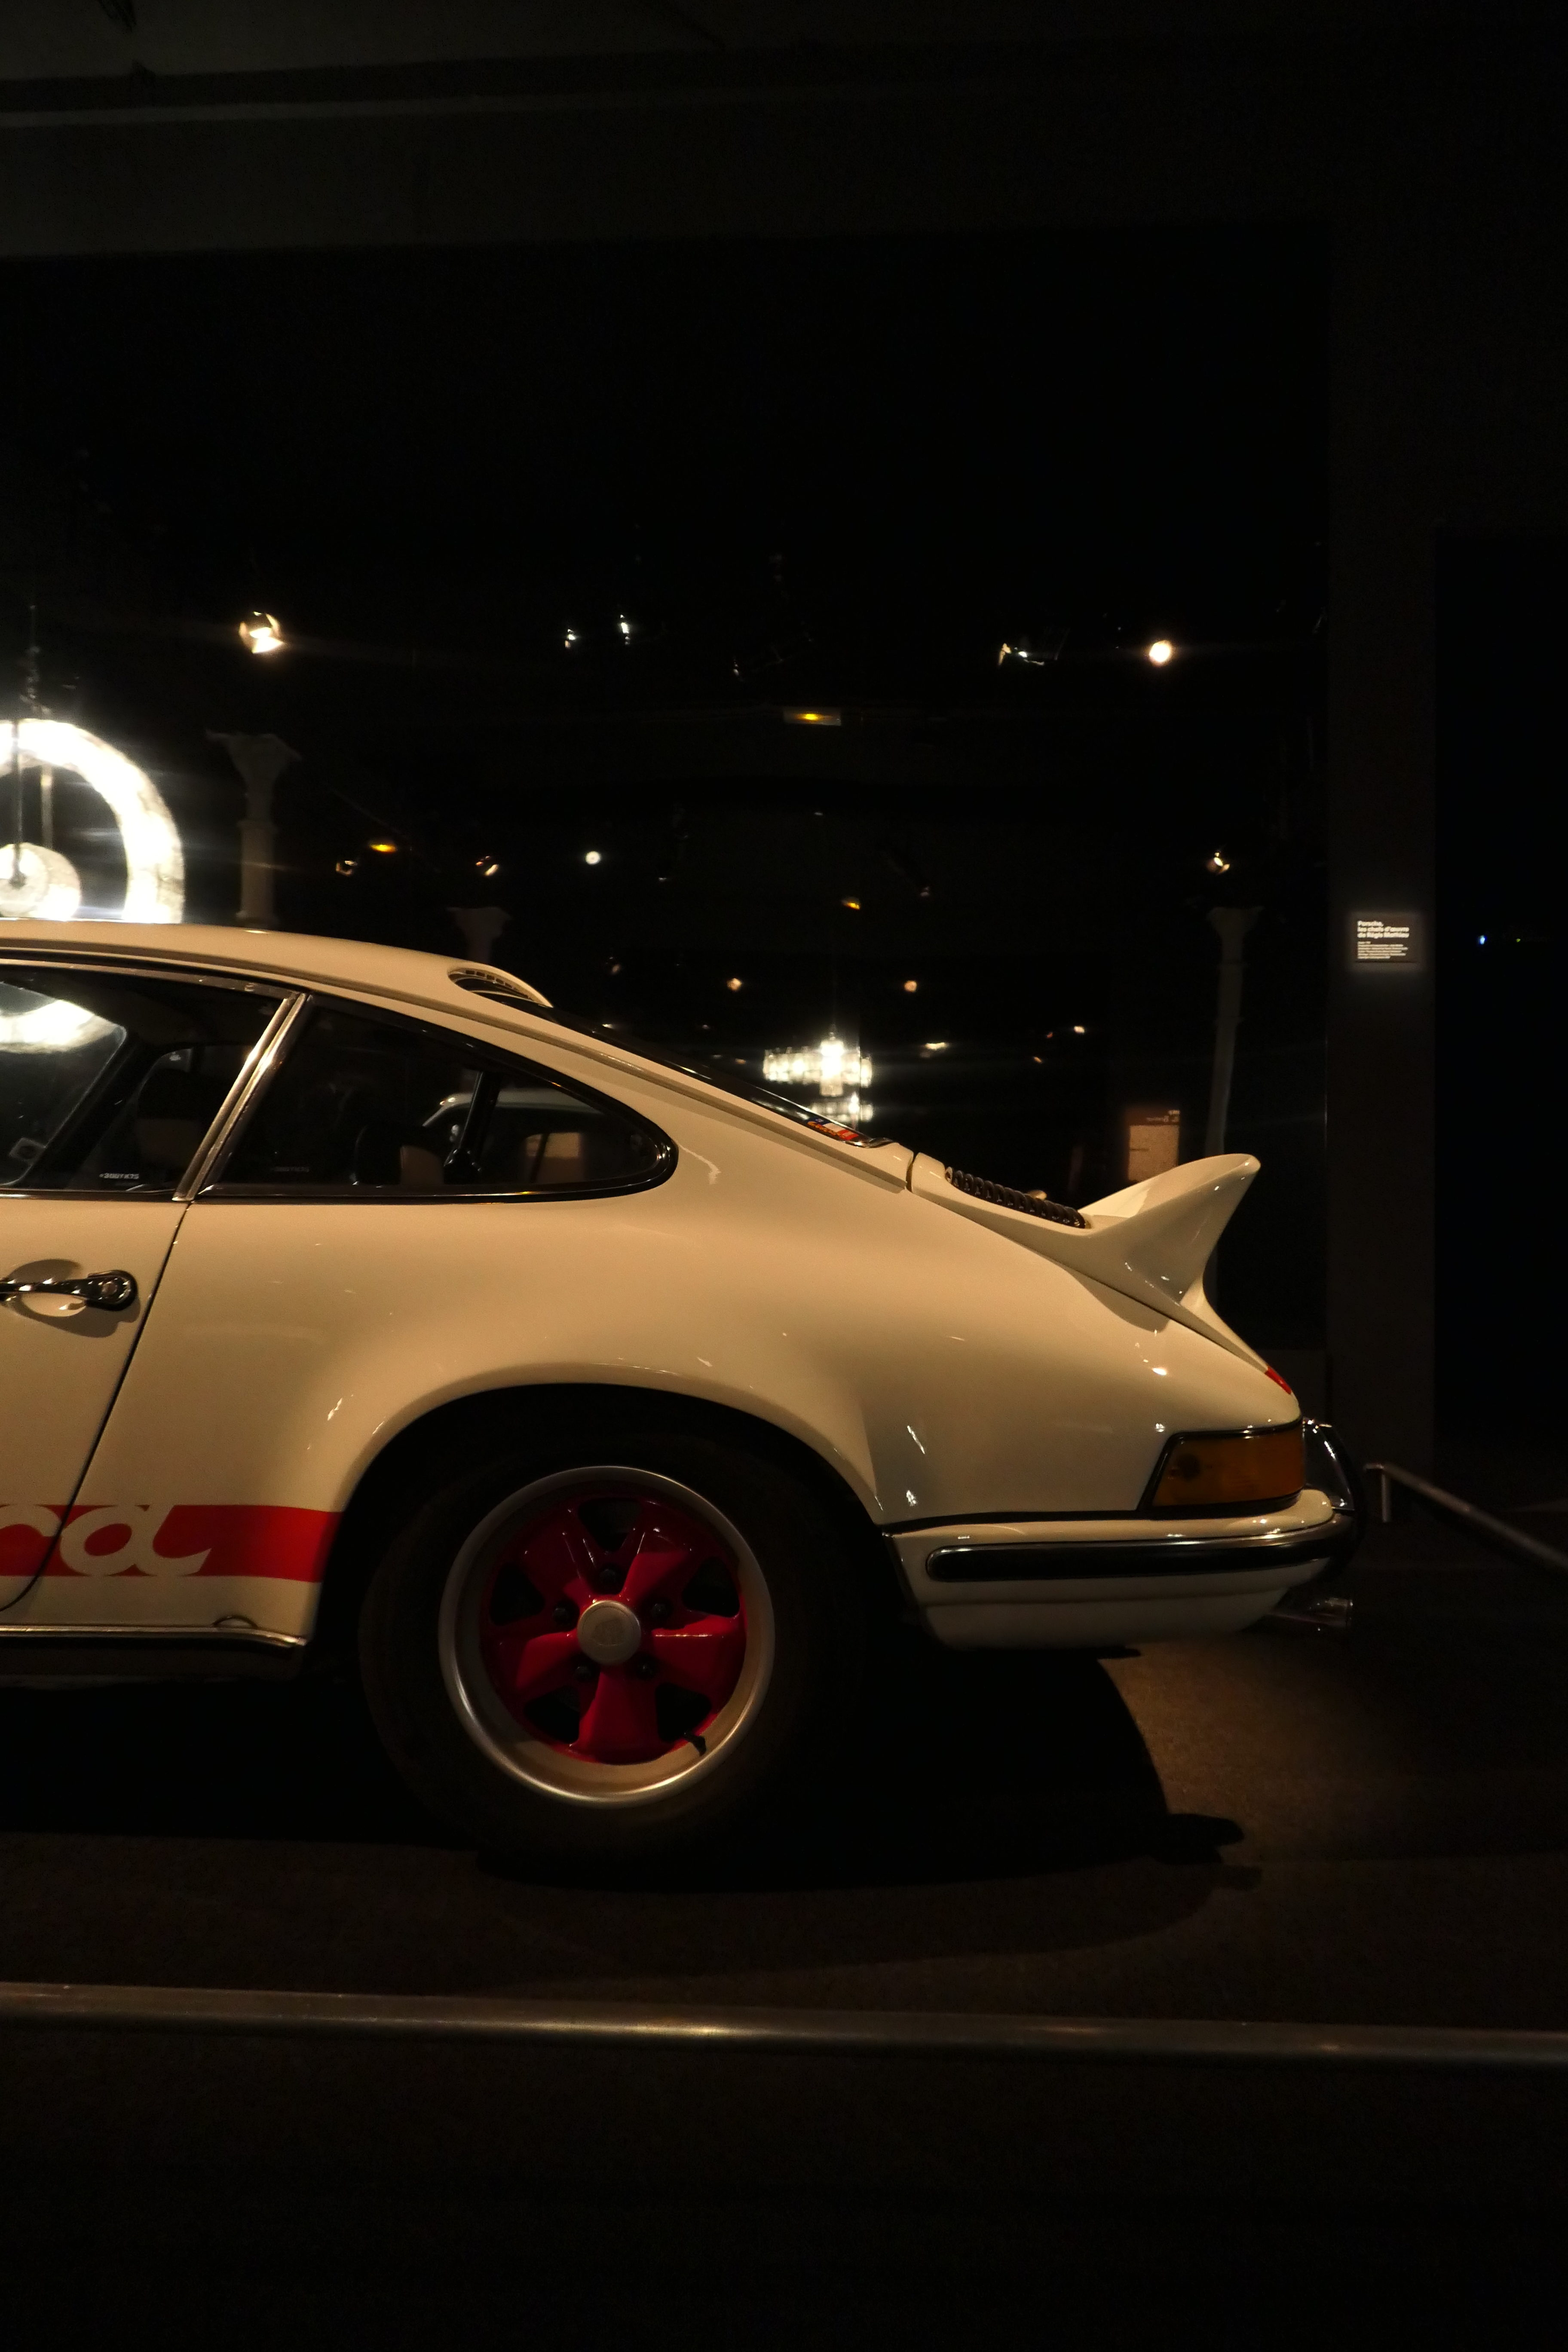 Porsche 911 RS 2.7 exposition exhibition regis mathieu cite de l'automobile mulhouse collection schlumpf road rug cars roadrugcars brothers car voiture auto automobile vintage car super car hyper car